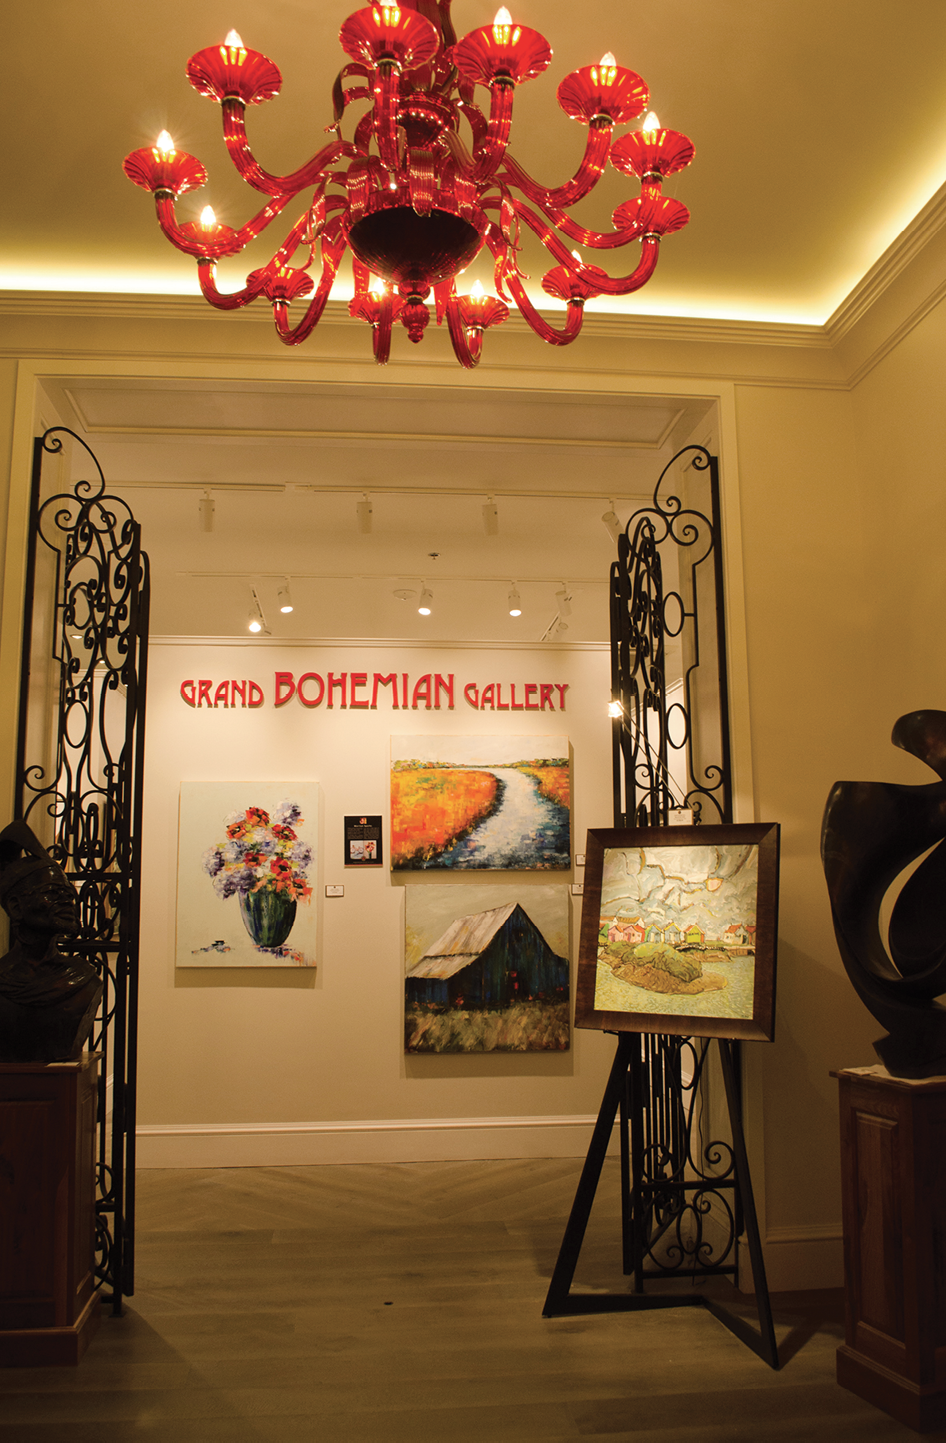 The gallery at Grand Bohemian on Wentworth are among the hotel's amenities that locals can enjoy, too.